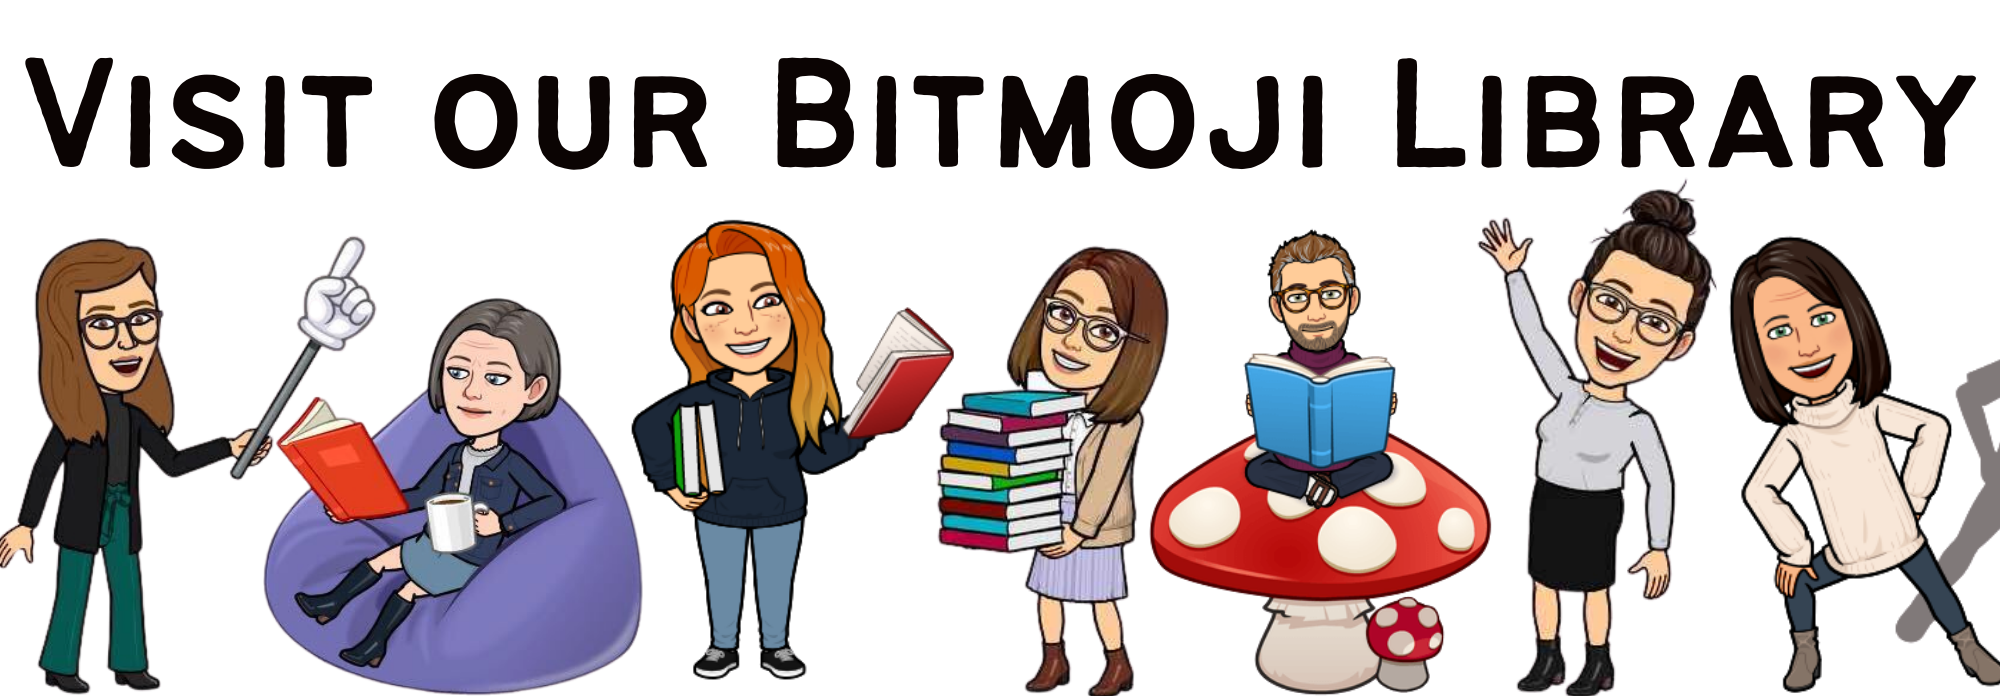 Bitmoji Library Hero -- link to bitmoji